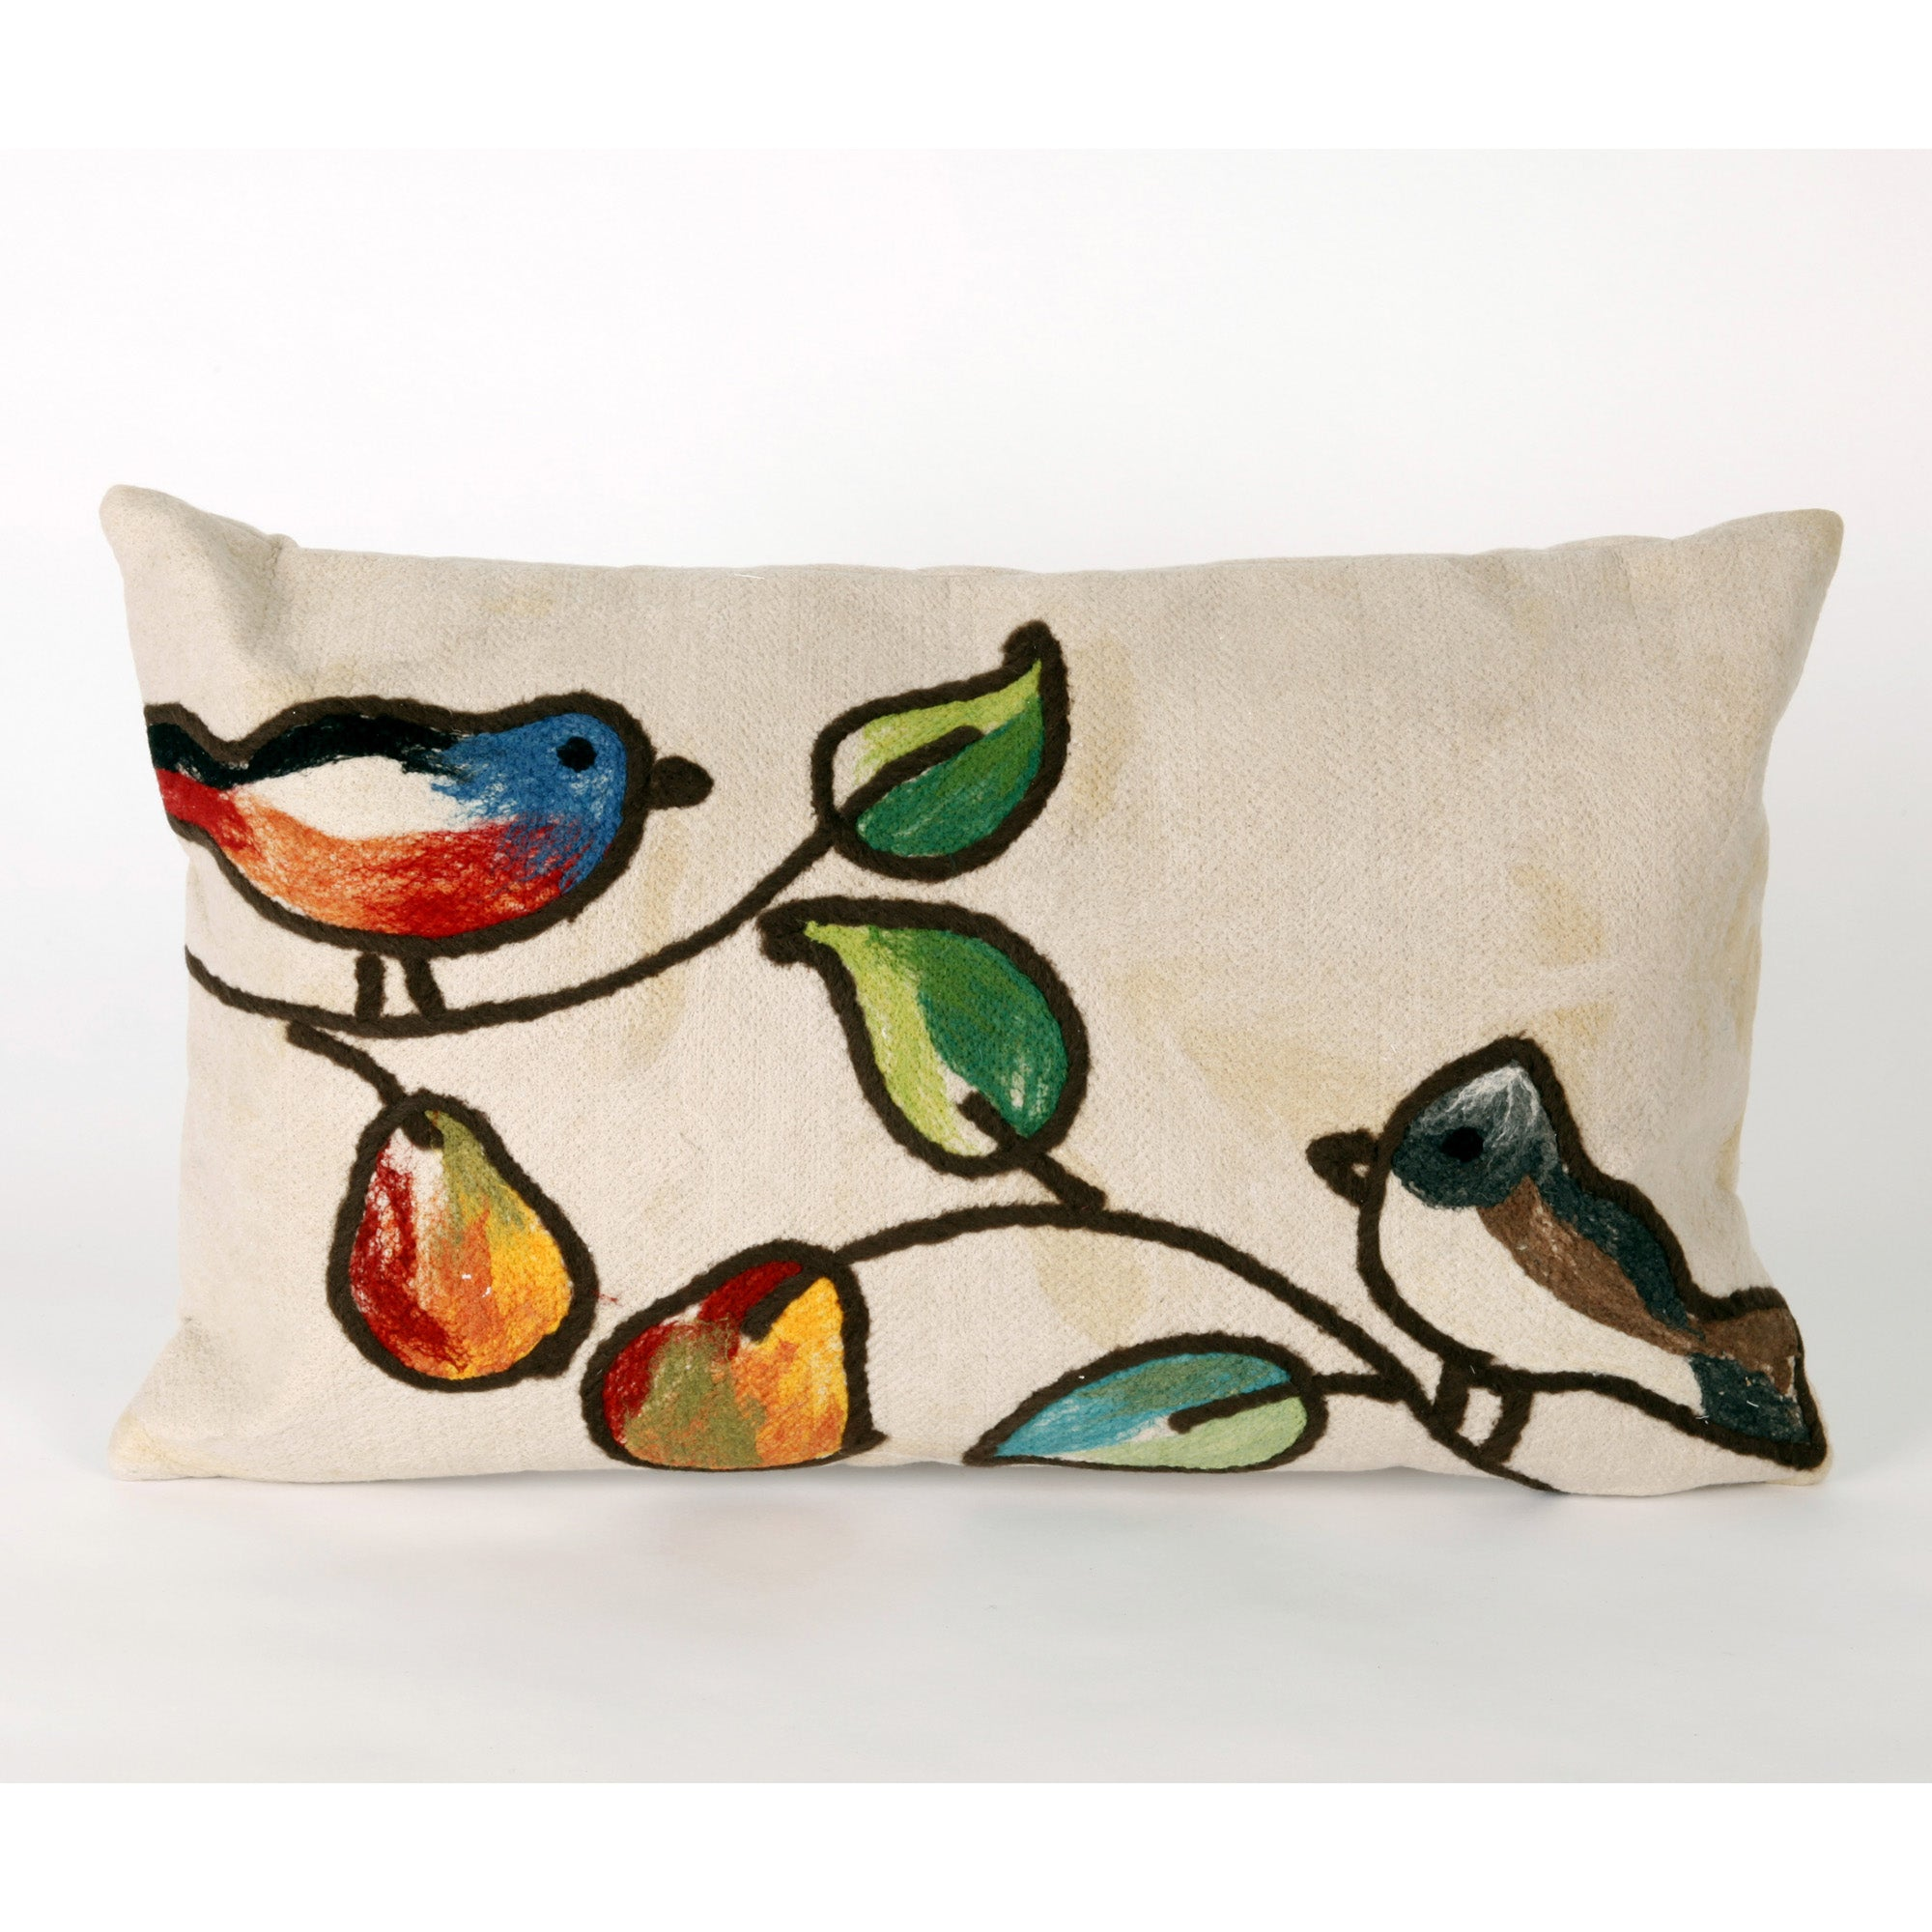 Birds In Pear Tree Decorative Throw Pillow